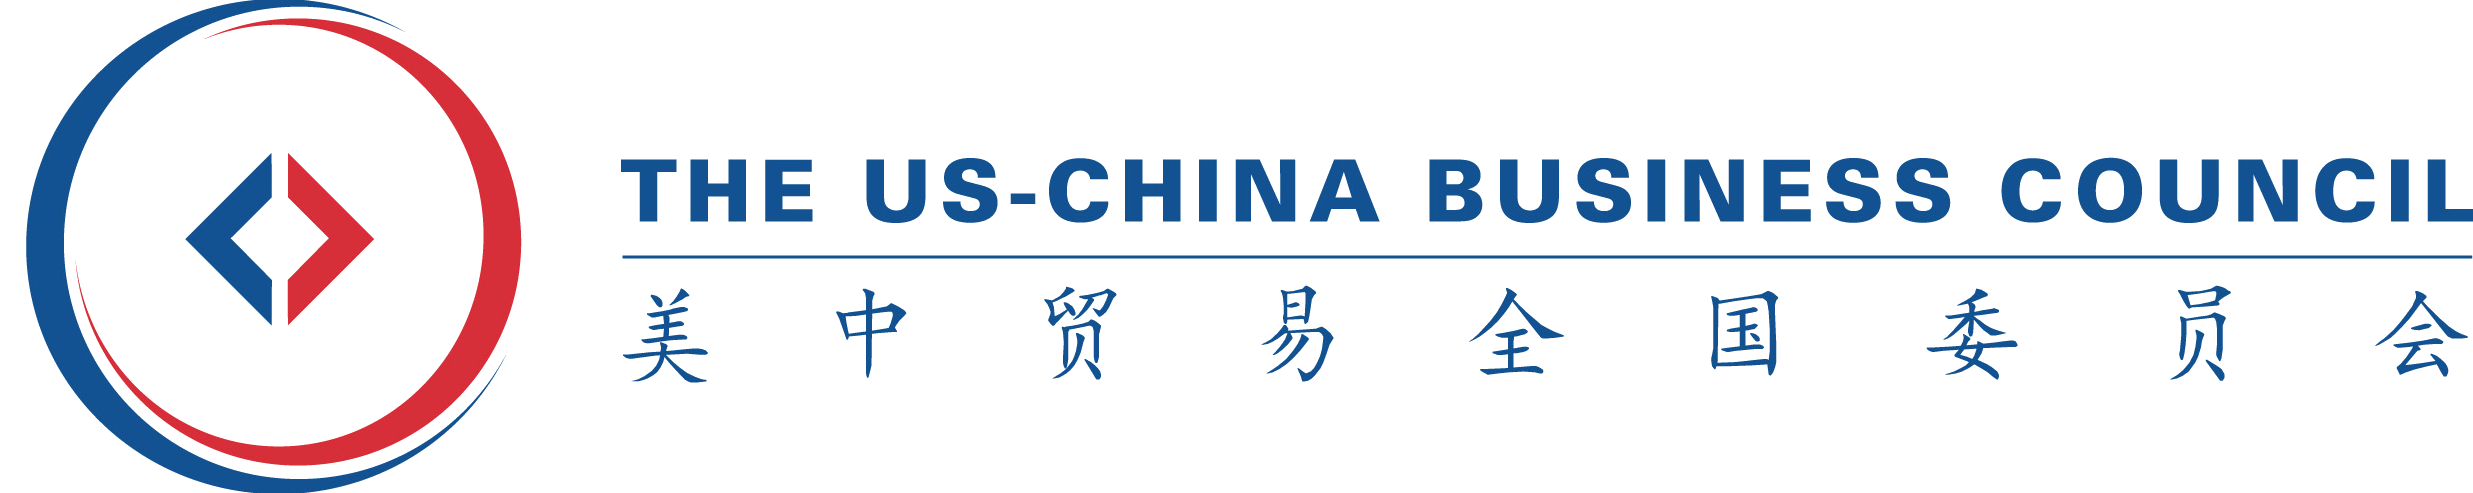 The US-China Business Council